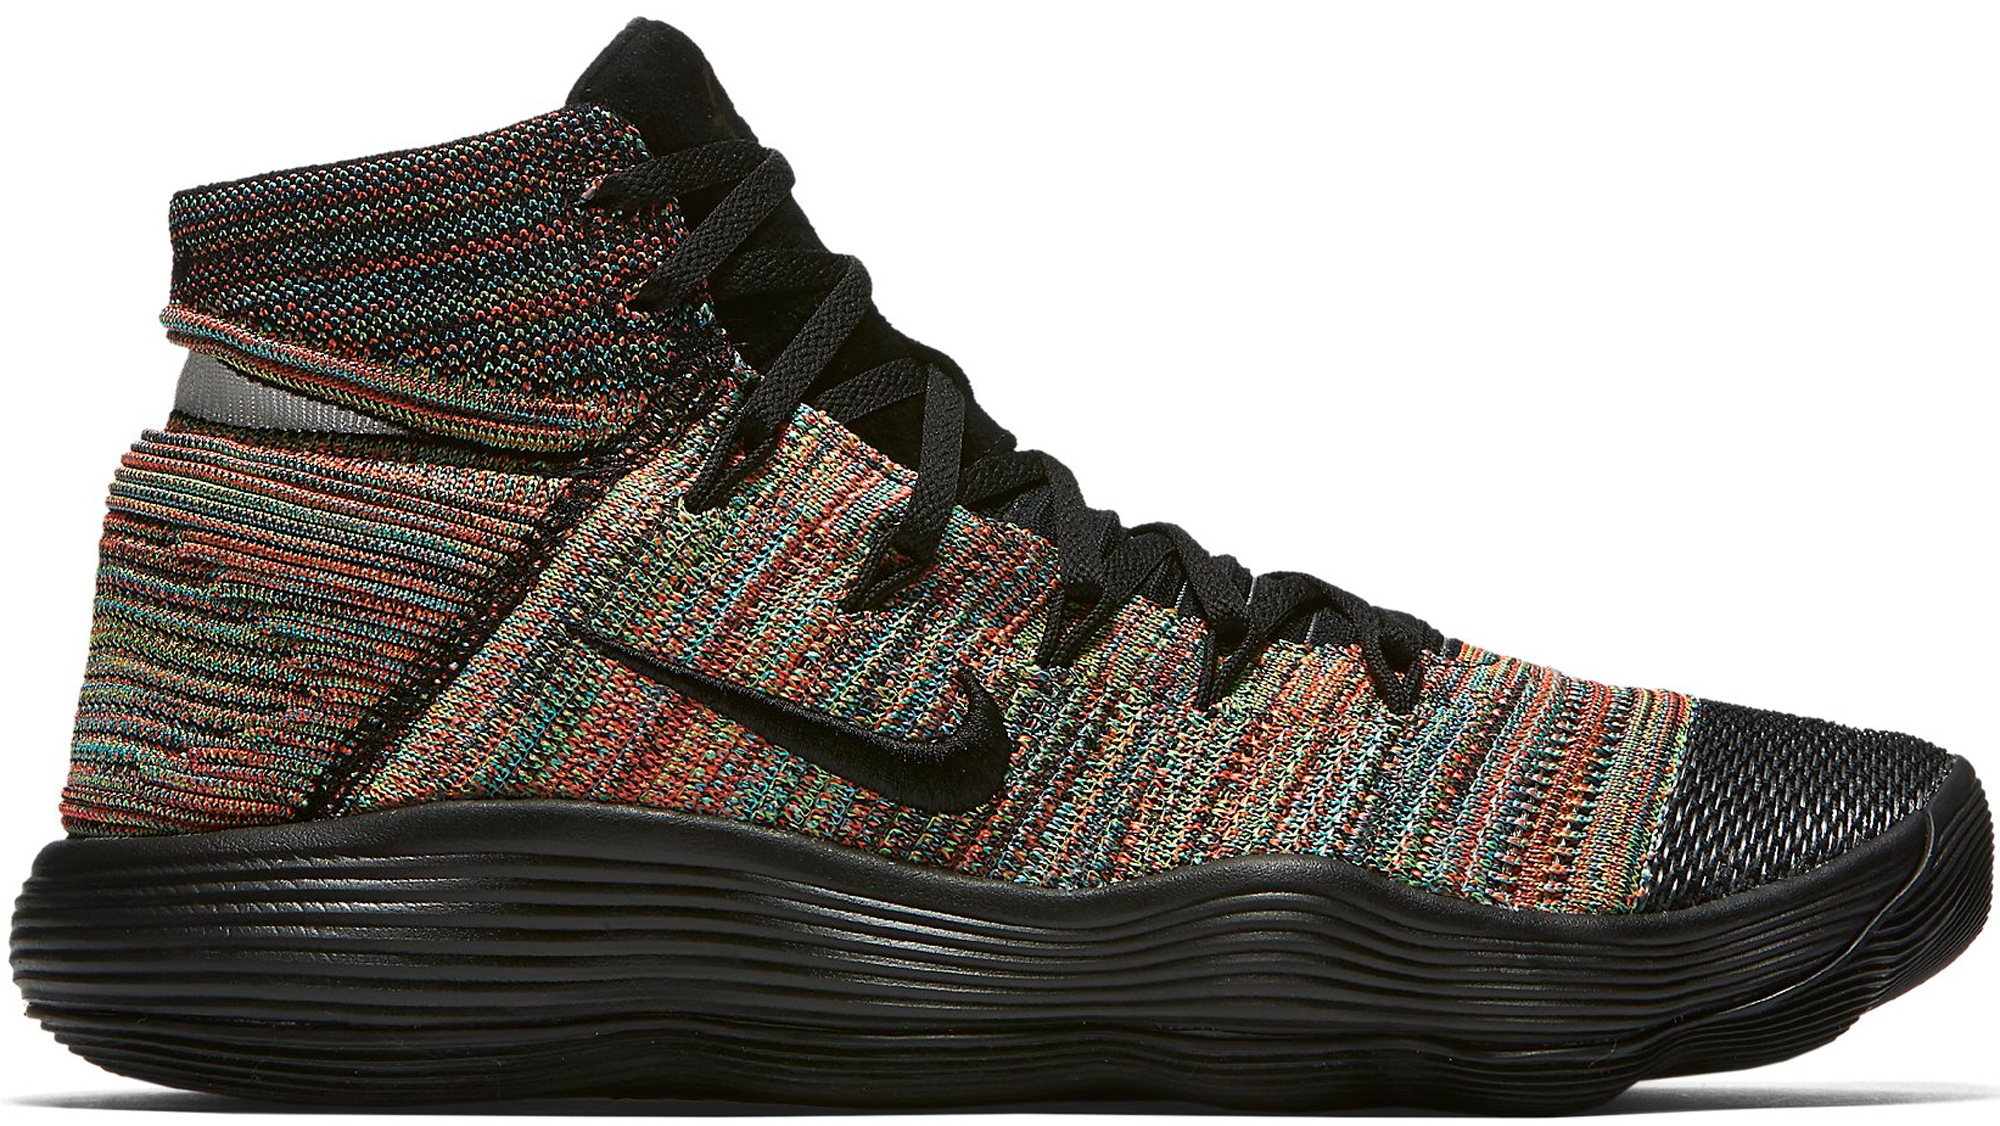 64bfac69f3f3 Nike React Hyperdunk 2017 Flyknit Multi-Color - StockX News